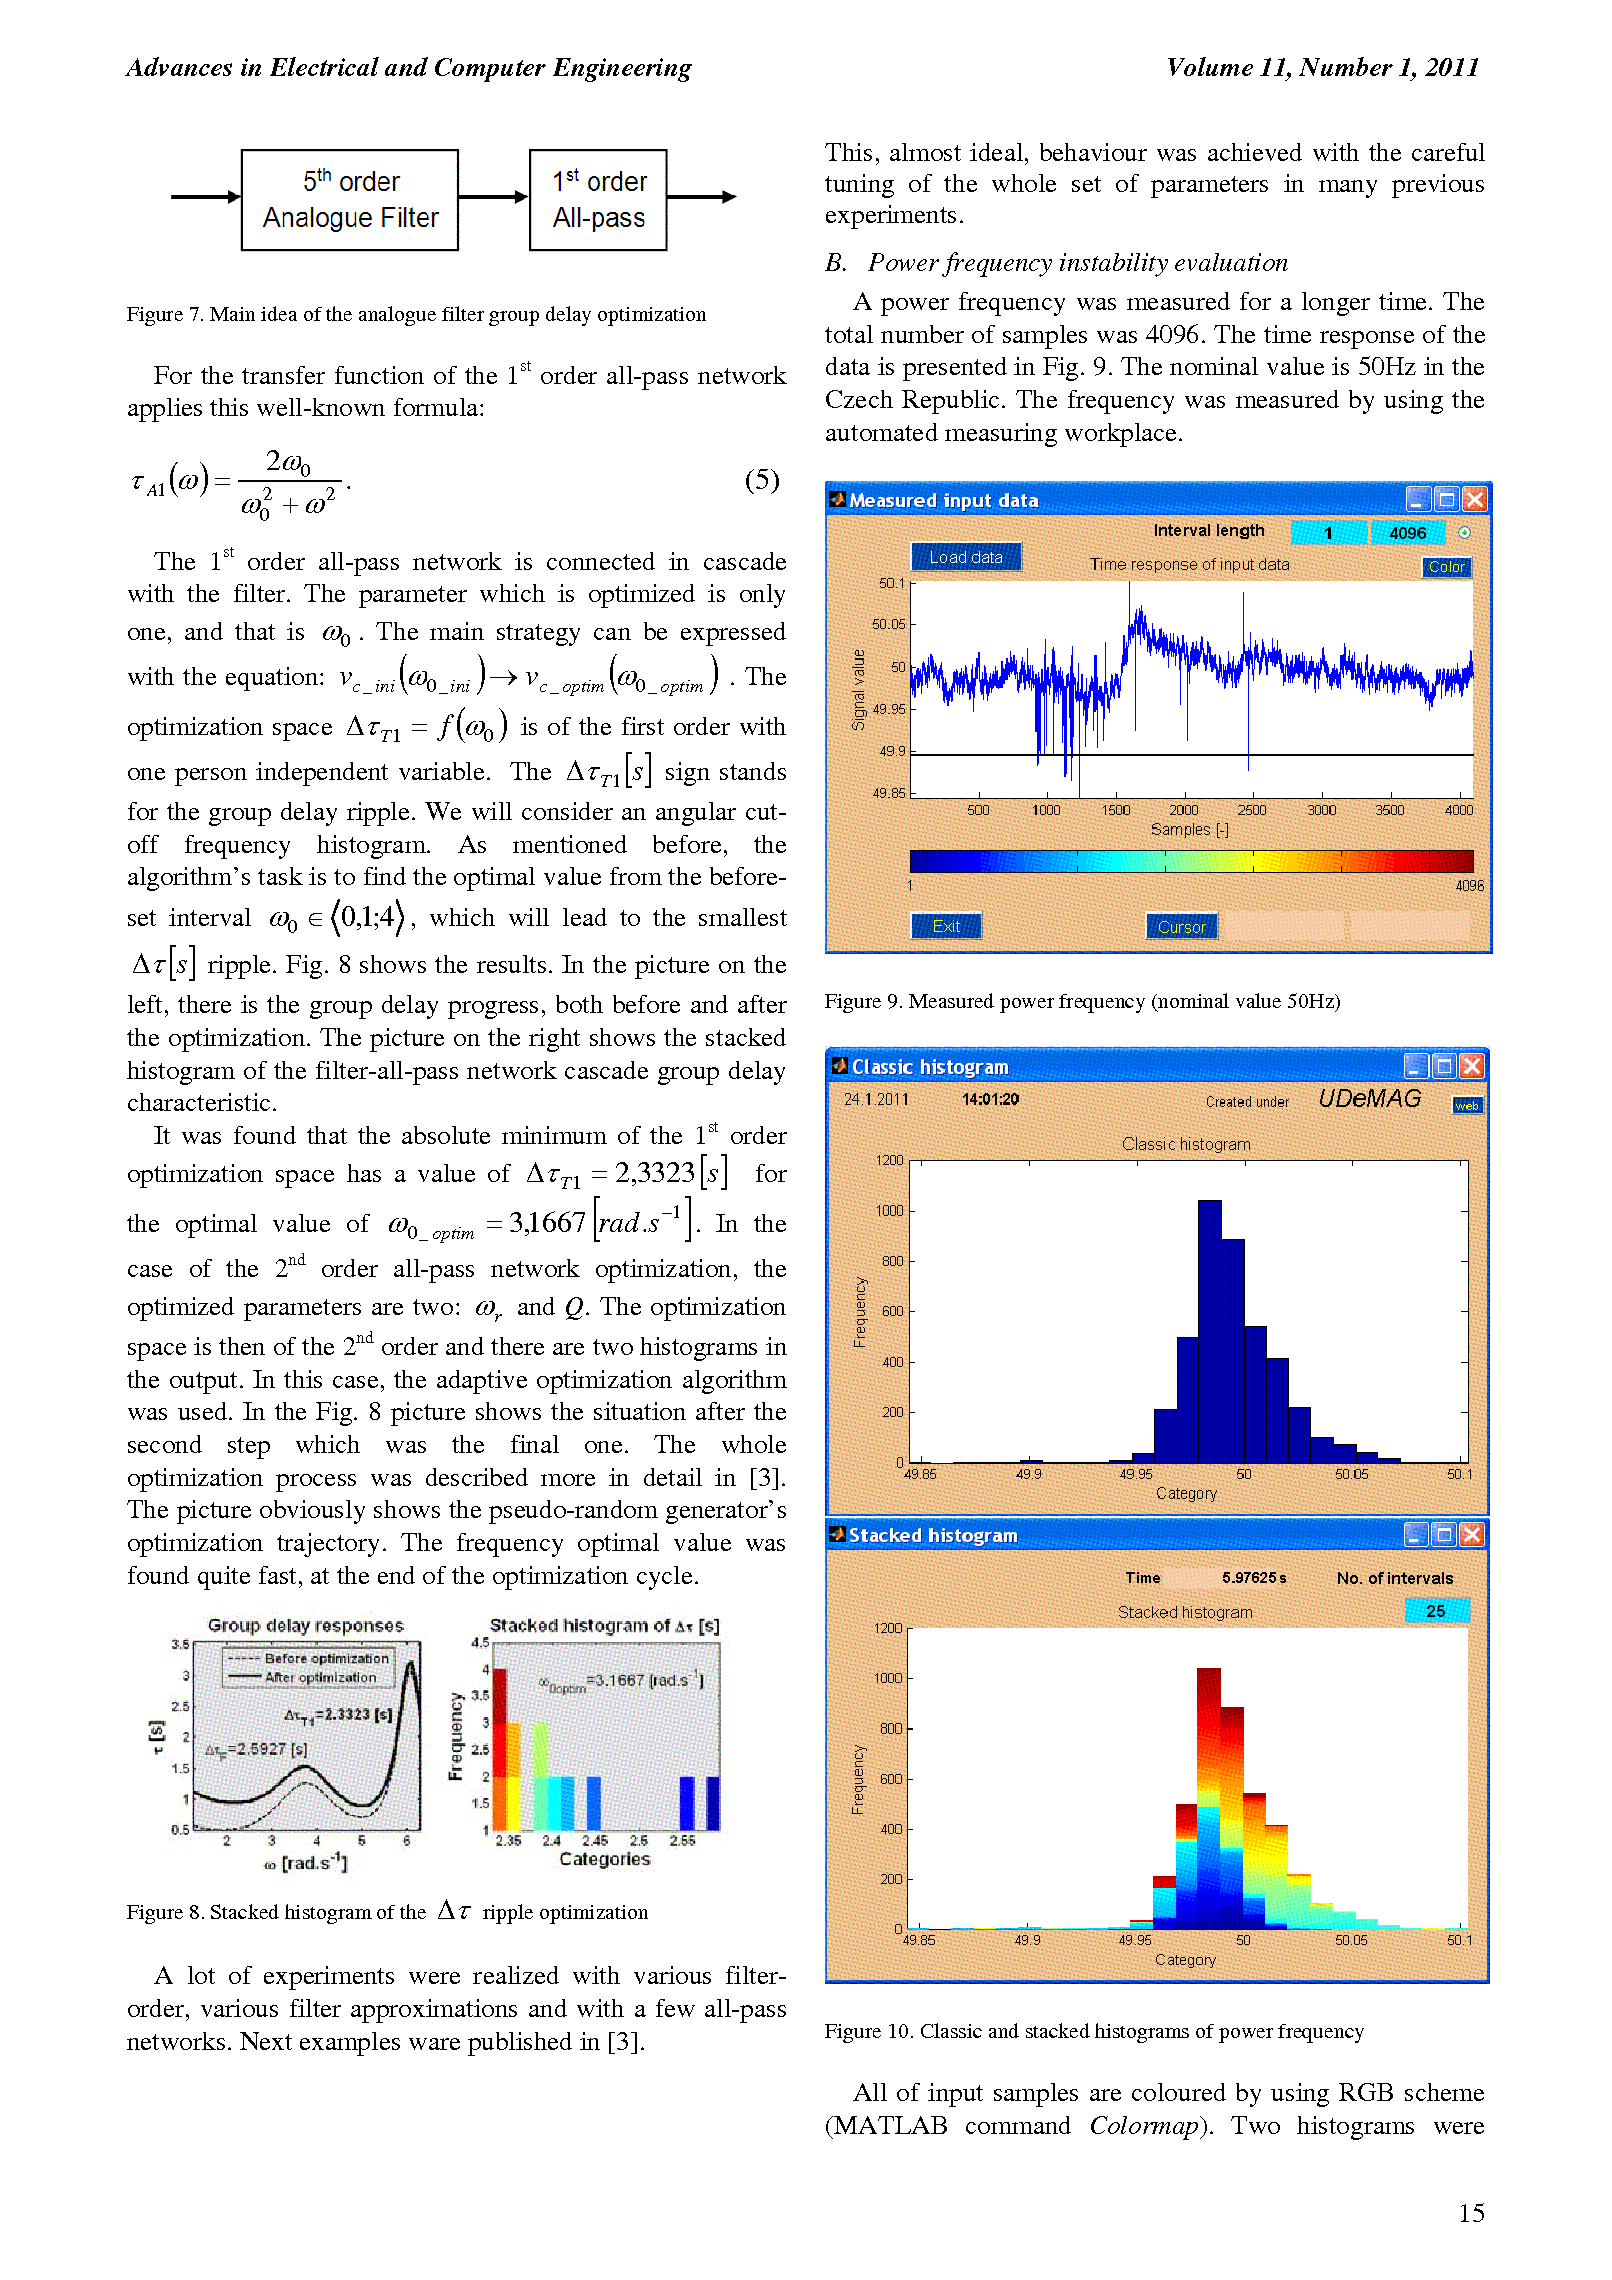 PDF Quickview for paper with DOI:10.4316/AECE.2011.01002